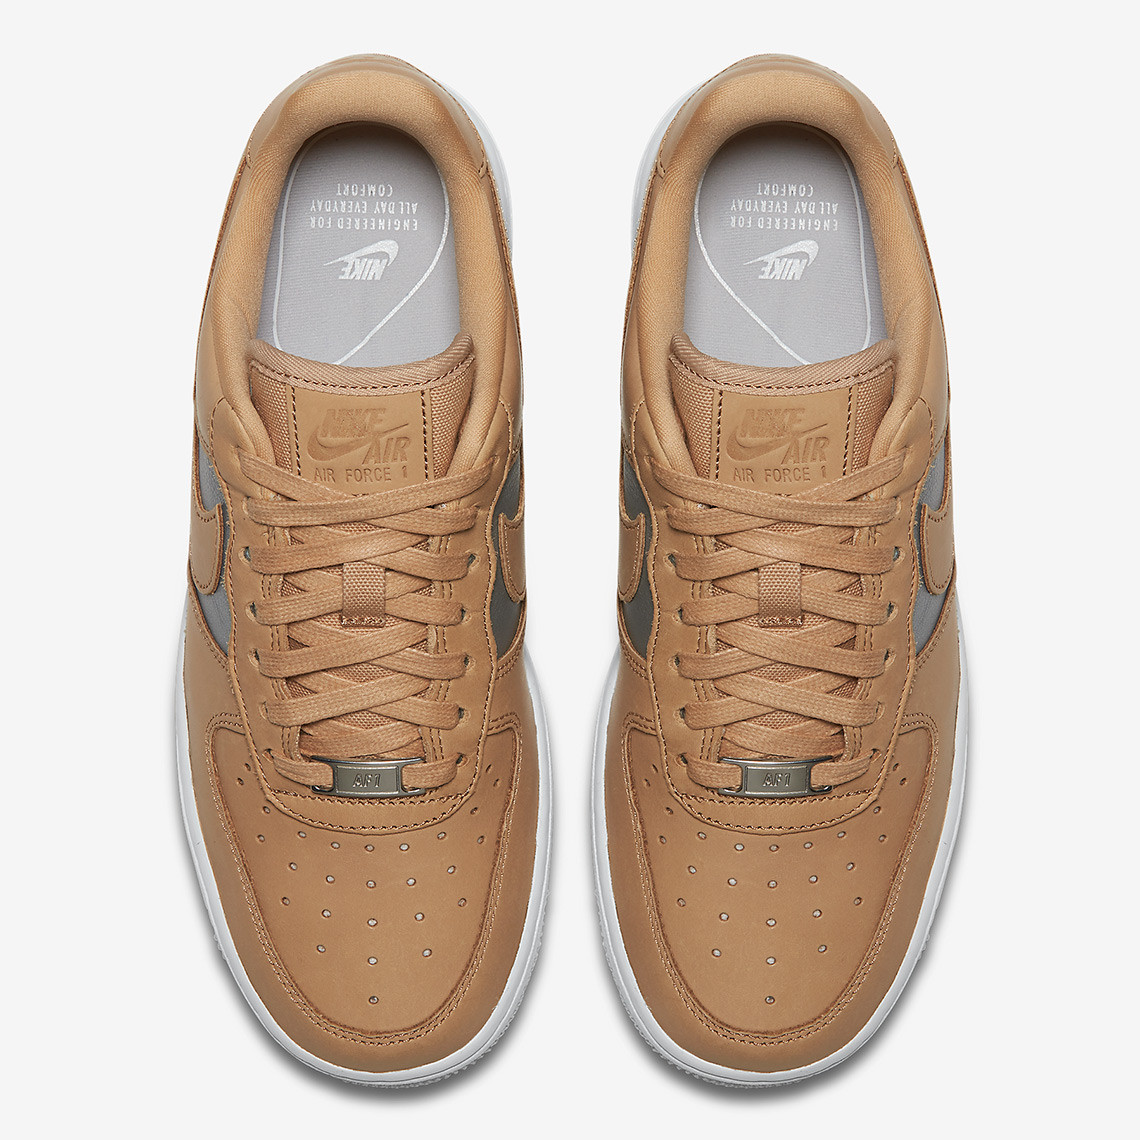 Nike Goes Tan-tastic With Two Of Their Classics Sportswear Models